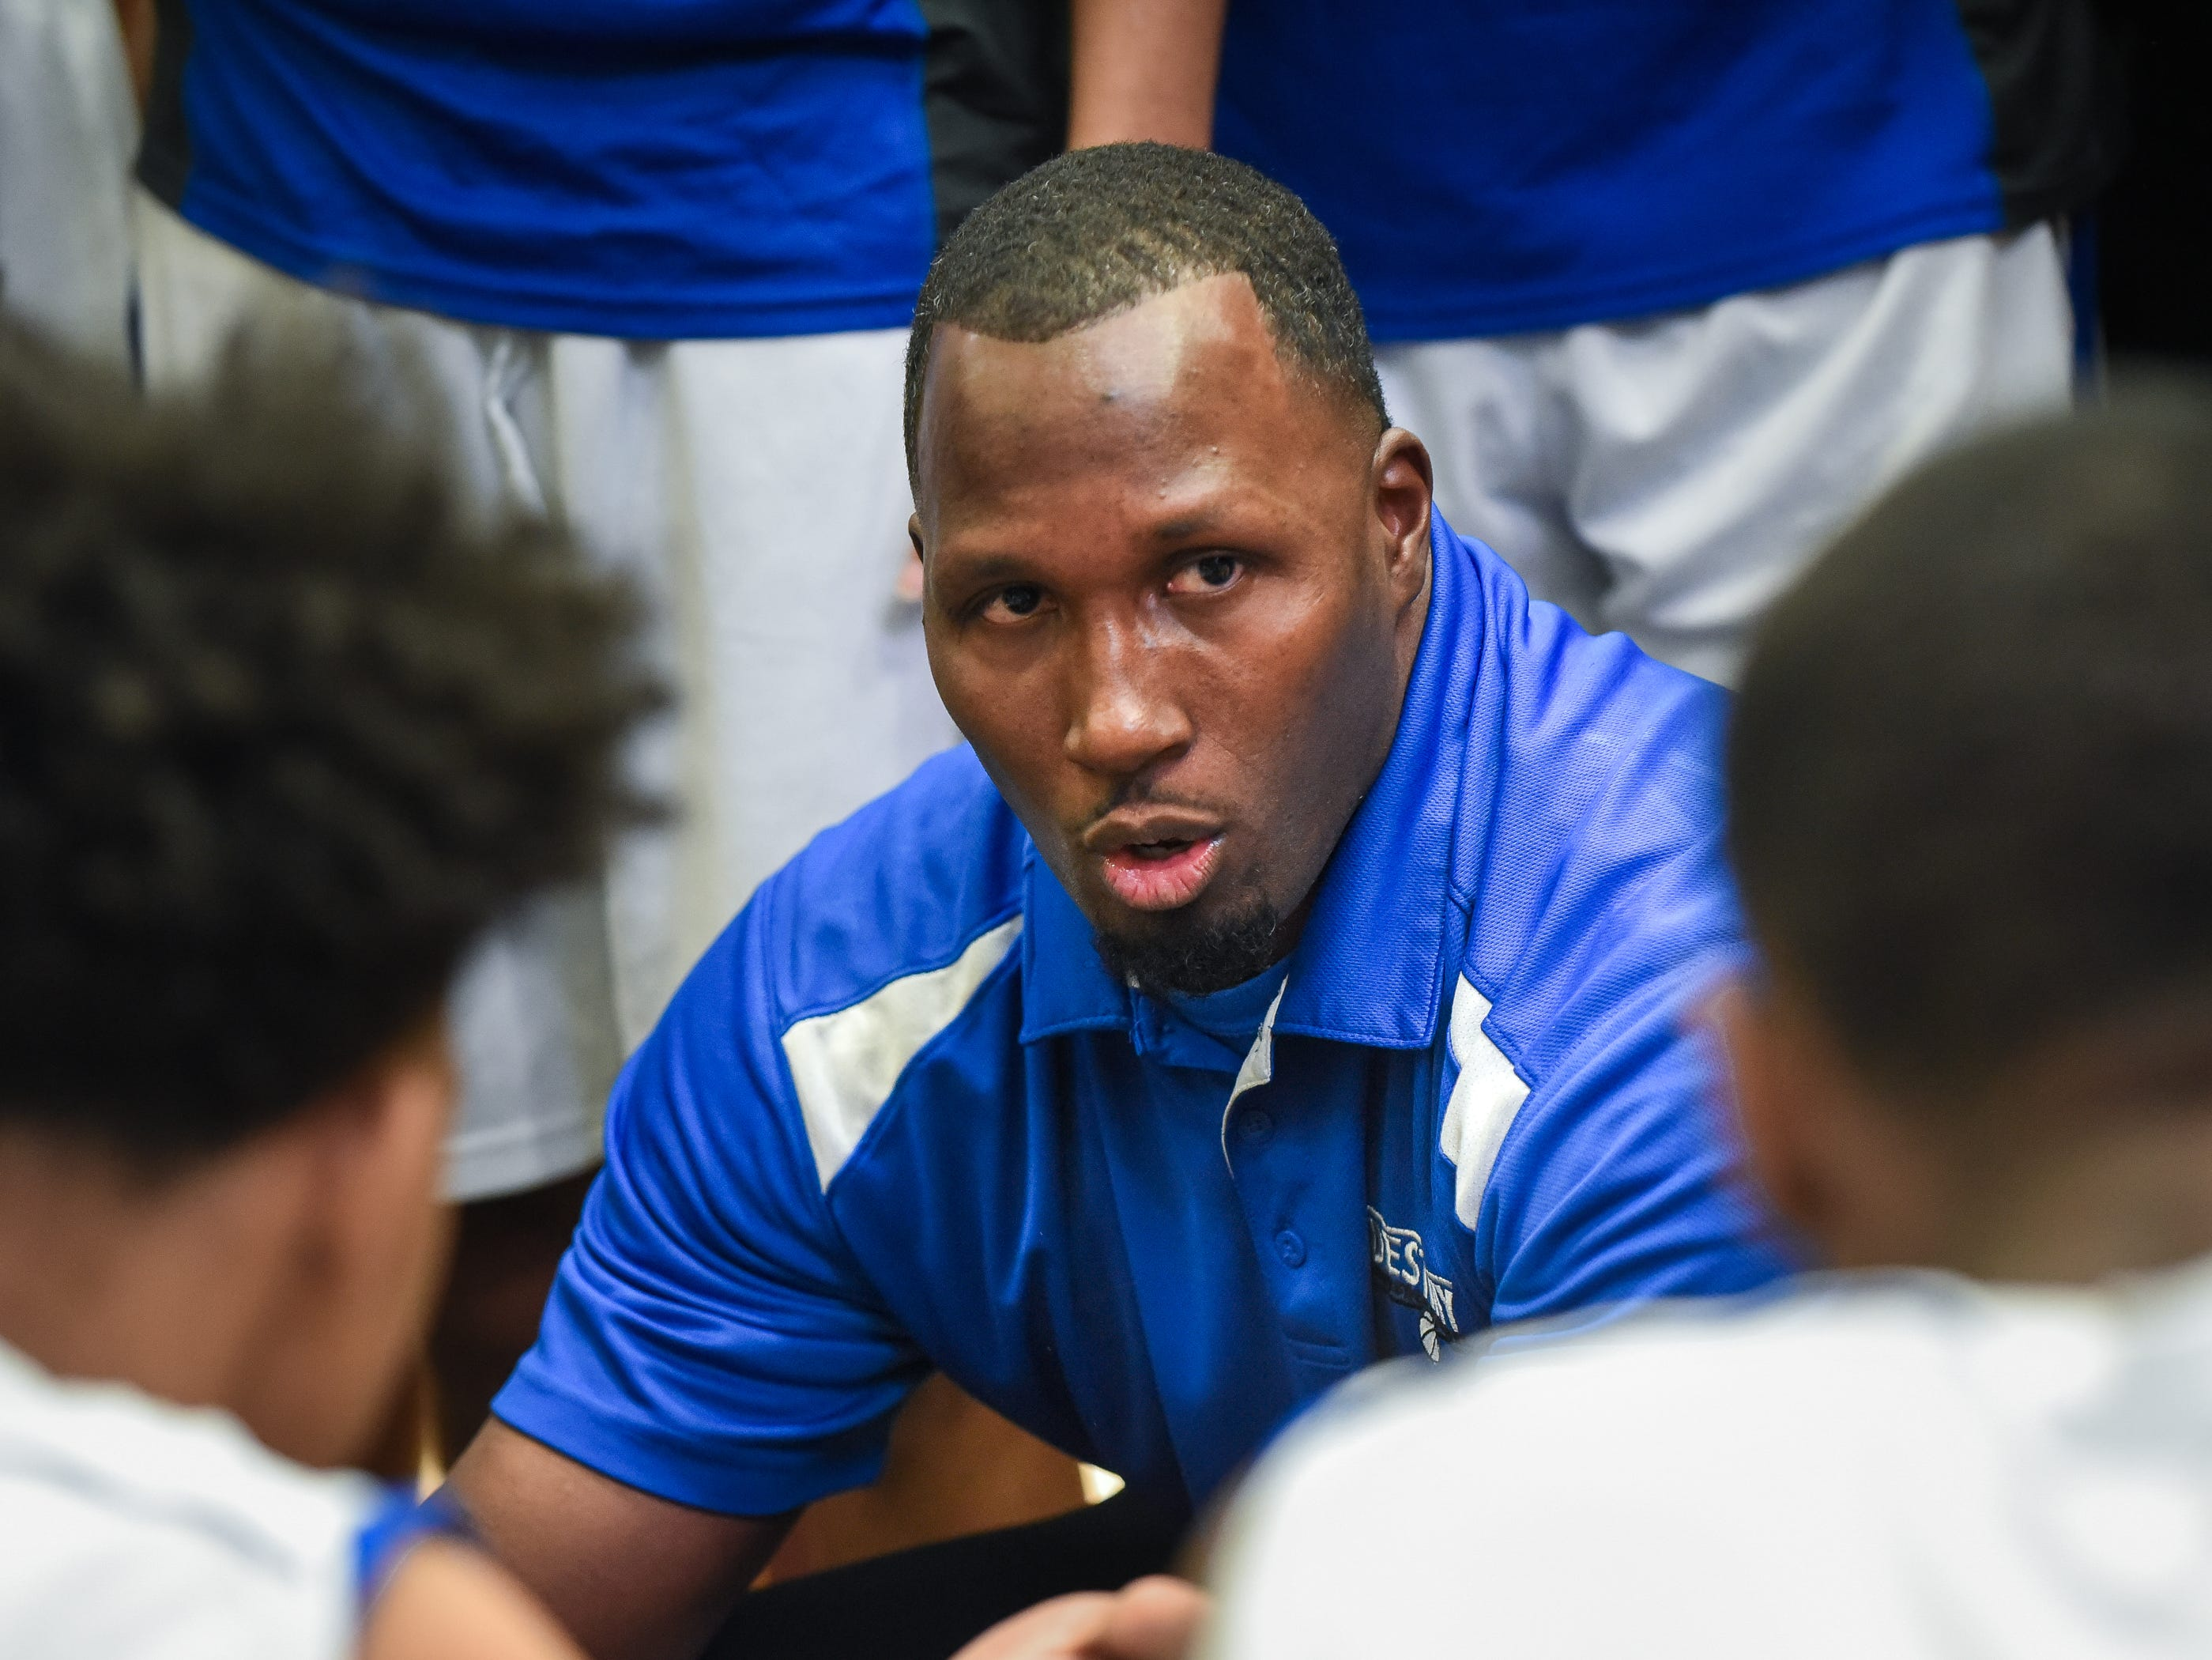 Destiny coach Billy Williams addresses his team during a timeout against Brown Deer in the Fresh Coast Classic basketball showcase Saturday, November 24, 2018, at UW-Milwaukee's Klotche Center.